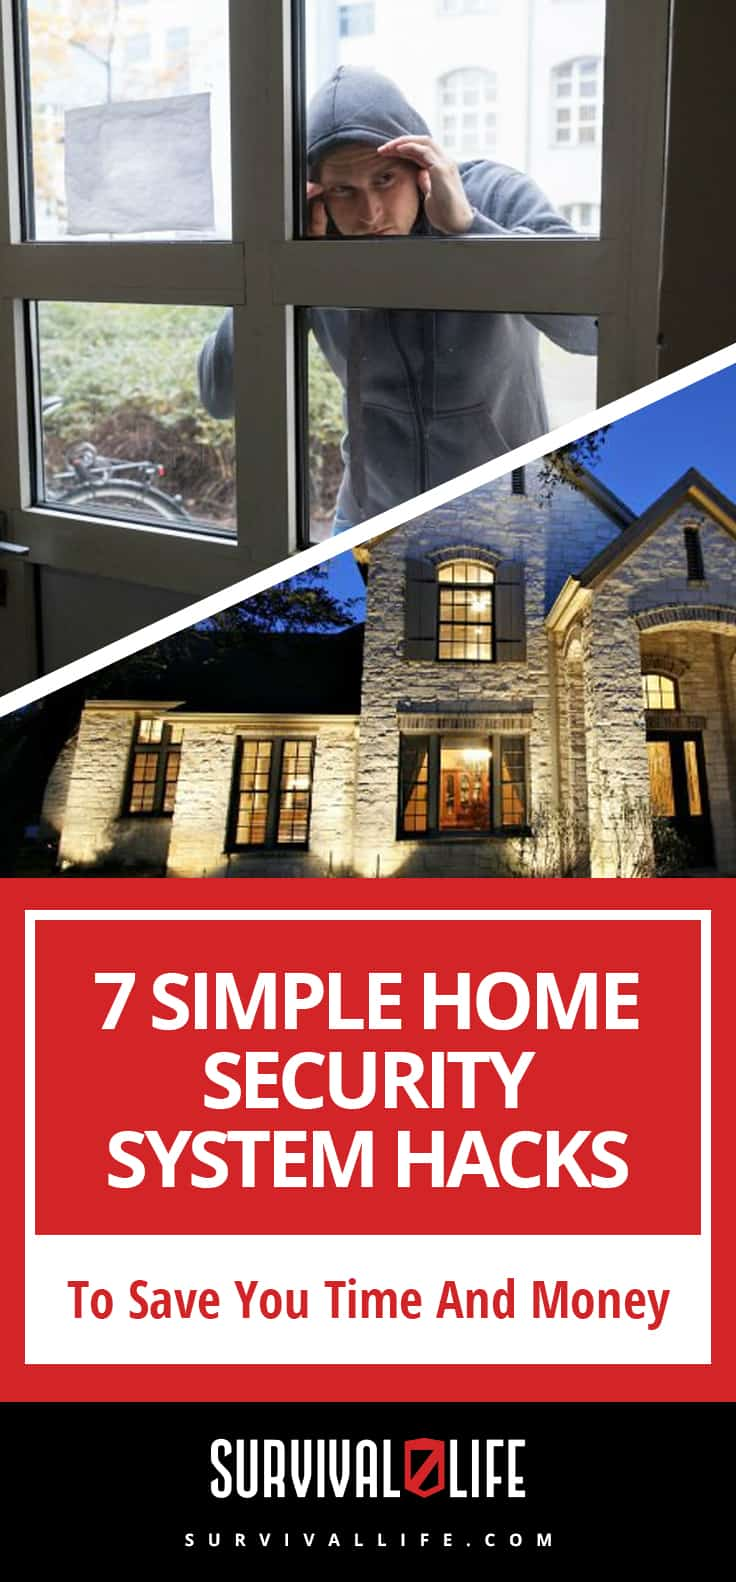 Check out 7 Simple Home Security System Hacks To Save You Time And Money at https://survivallife.com/home-security-system/